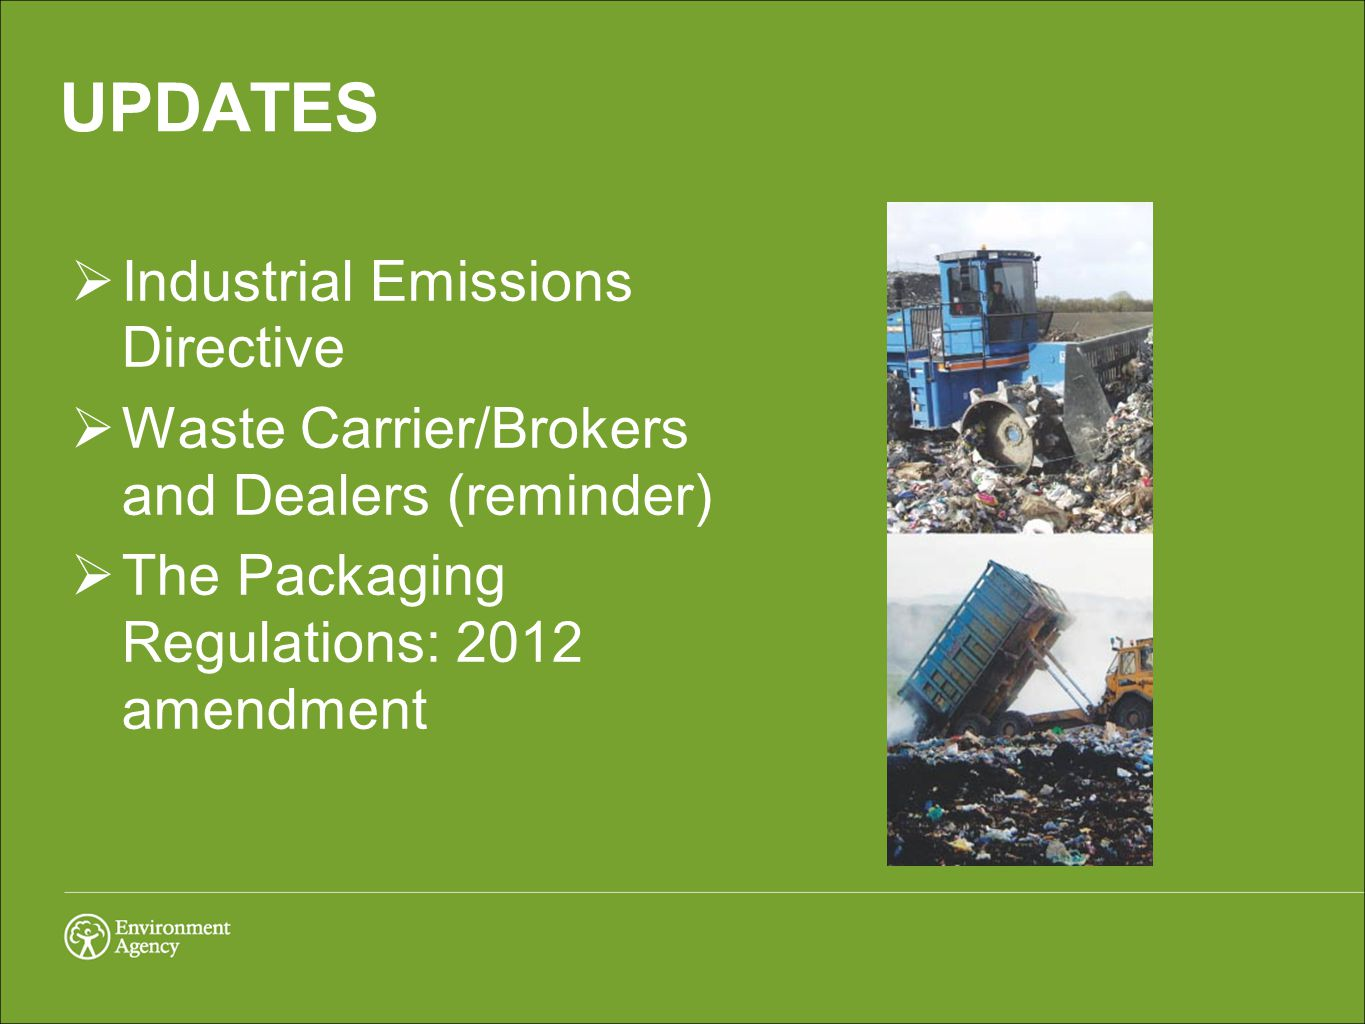 Industrial Emissions Directive The Environmental Permitting (England and Wales) (Amendment) Regulations 2013 came into force on 27 th February 2013.